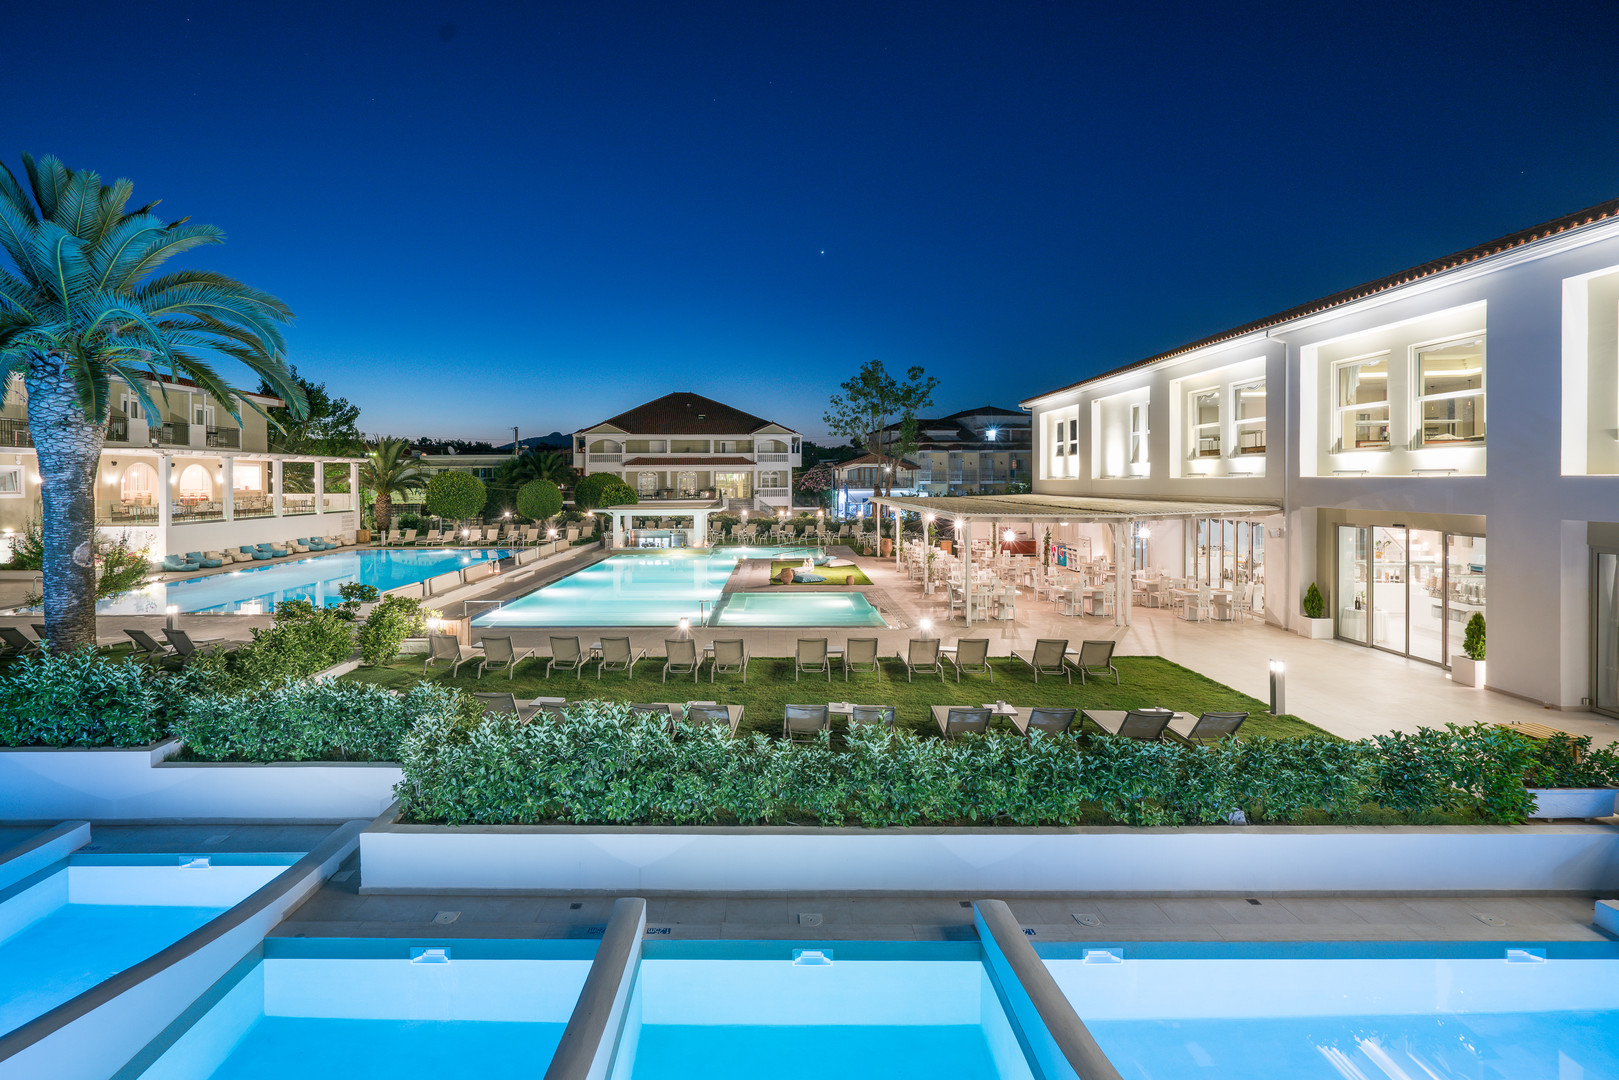 Hotel Zante Park Resort and Spa